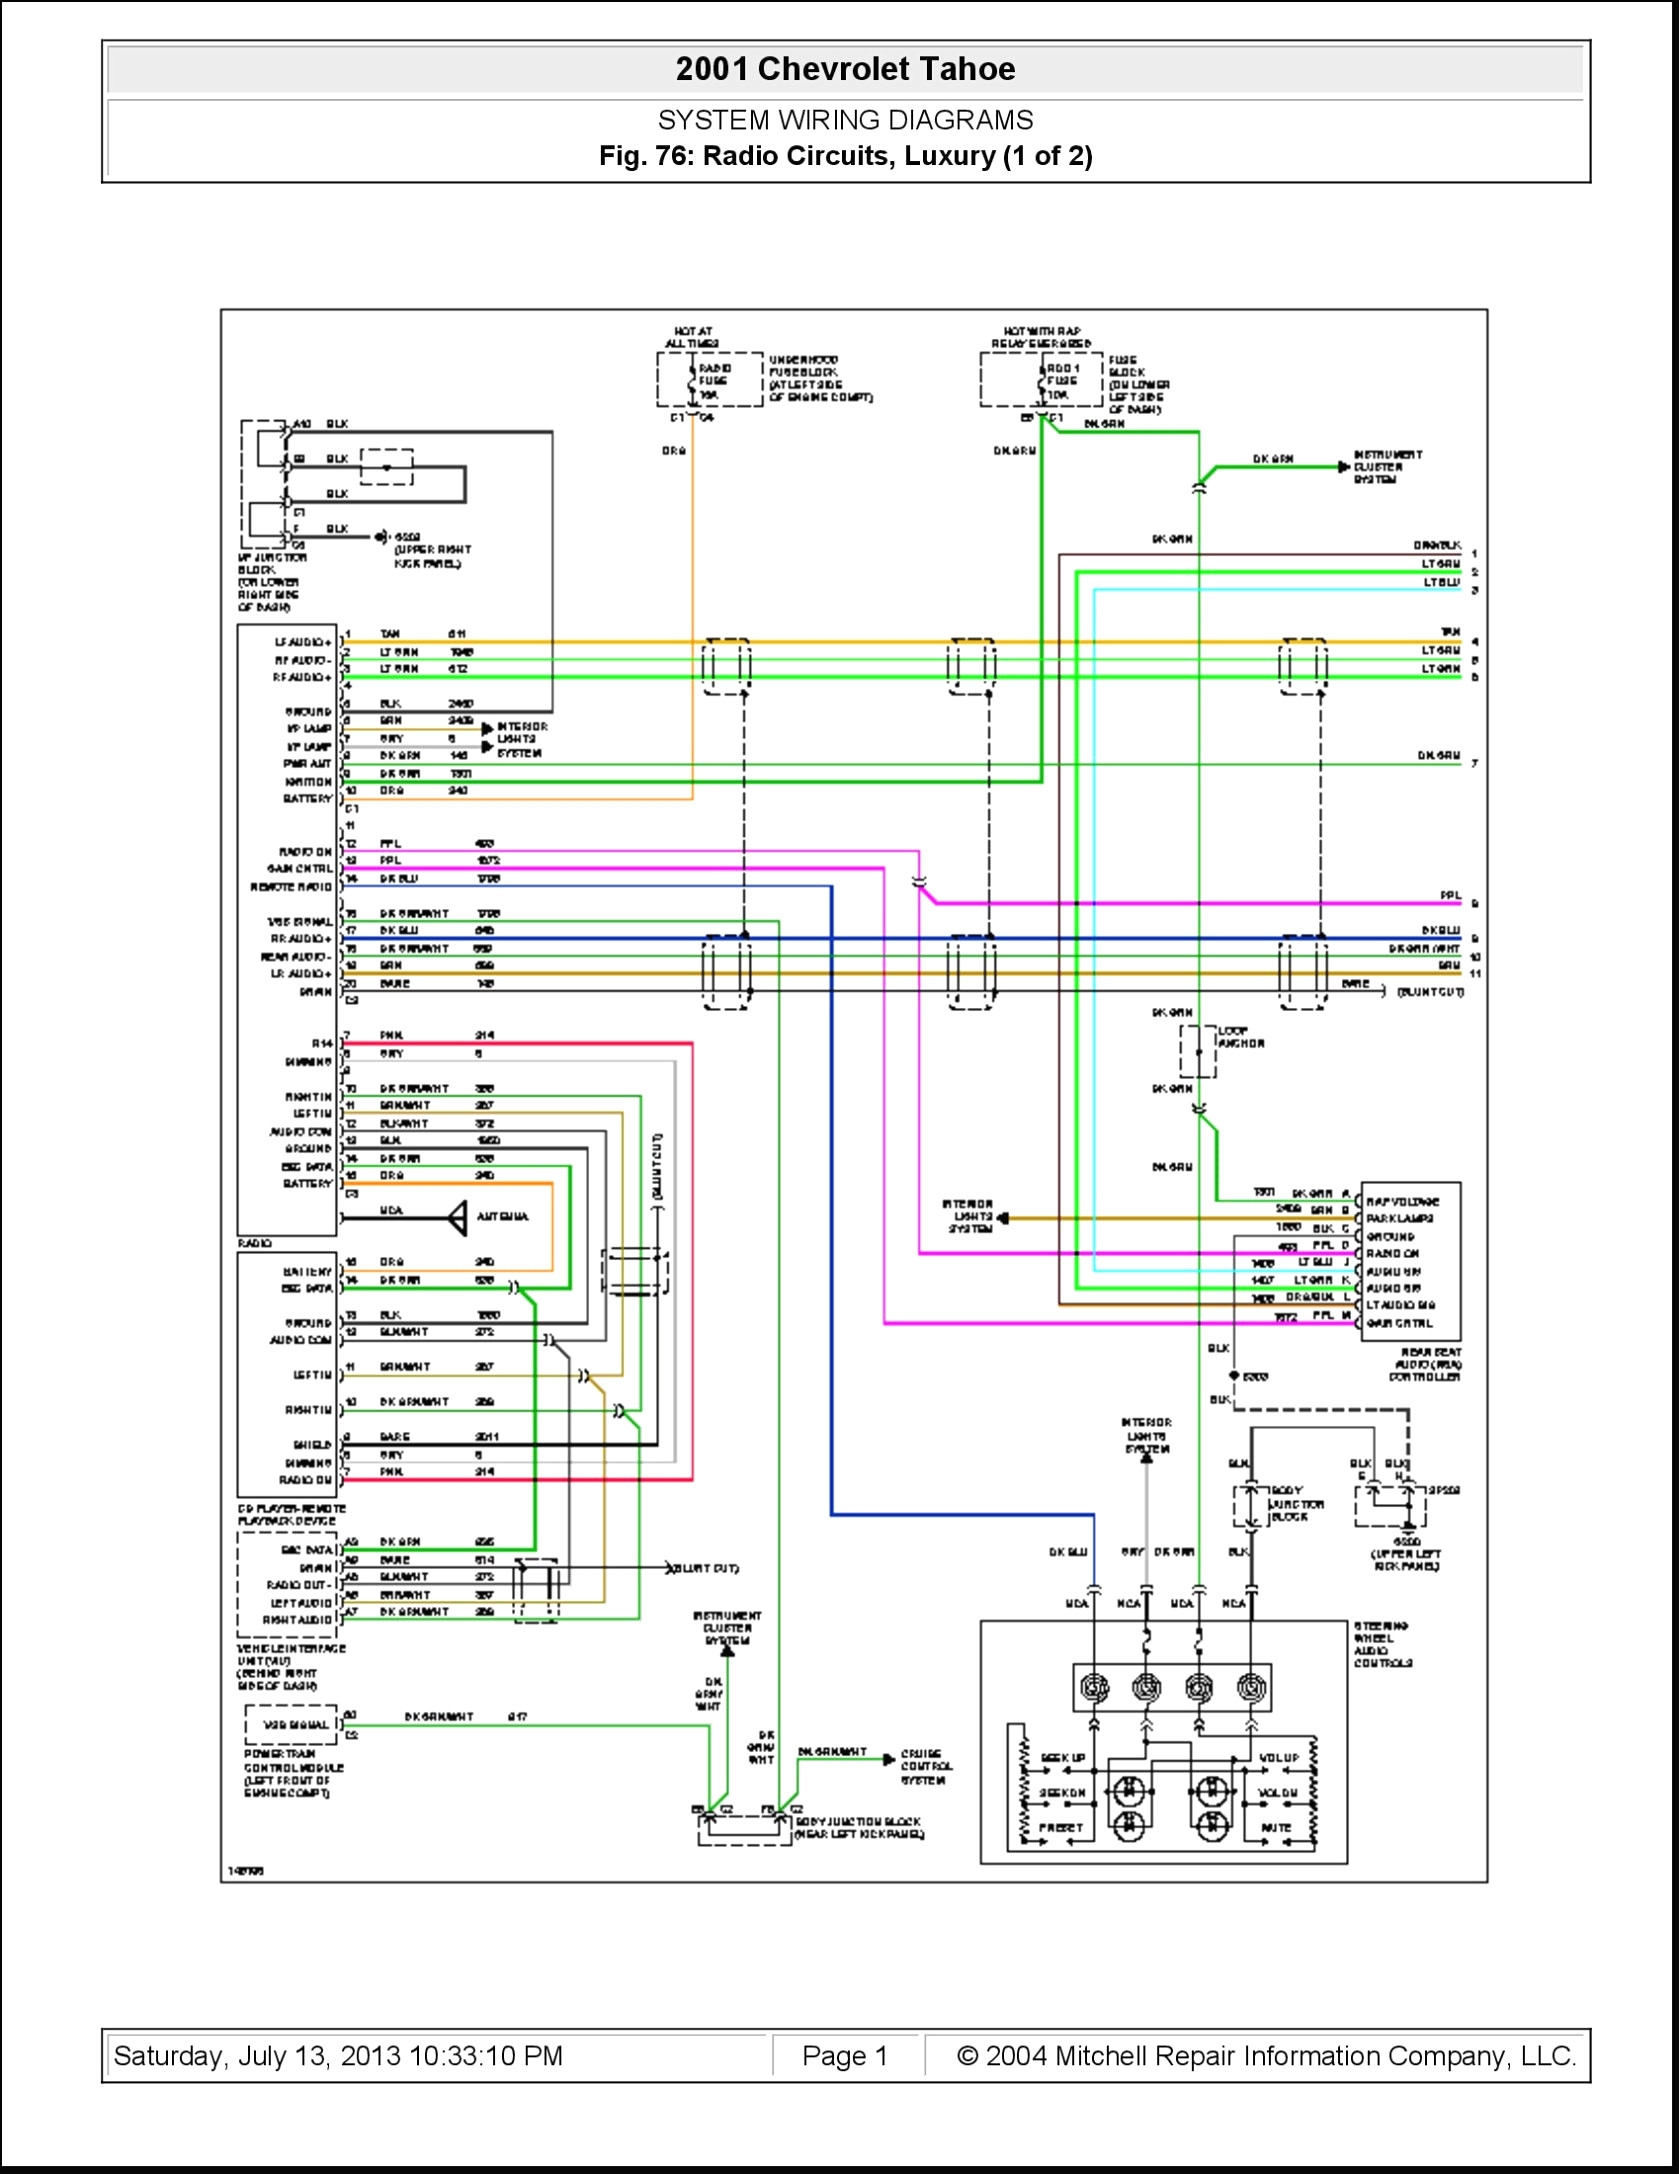 2000 chevy malibu radio wiring diagram Download-2002 Chevy Malibu Radio Wiring Diagram Collection 2001 Chevy Tahoe Wiring S Schematics Cool 2002 15-d